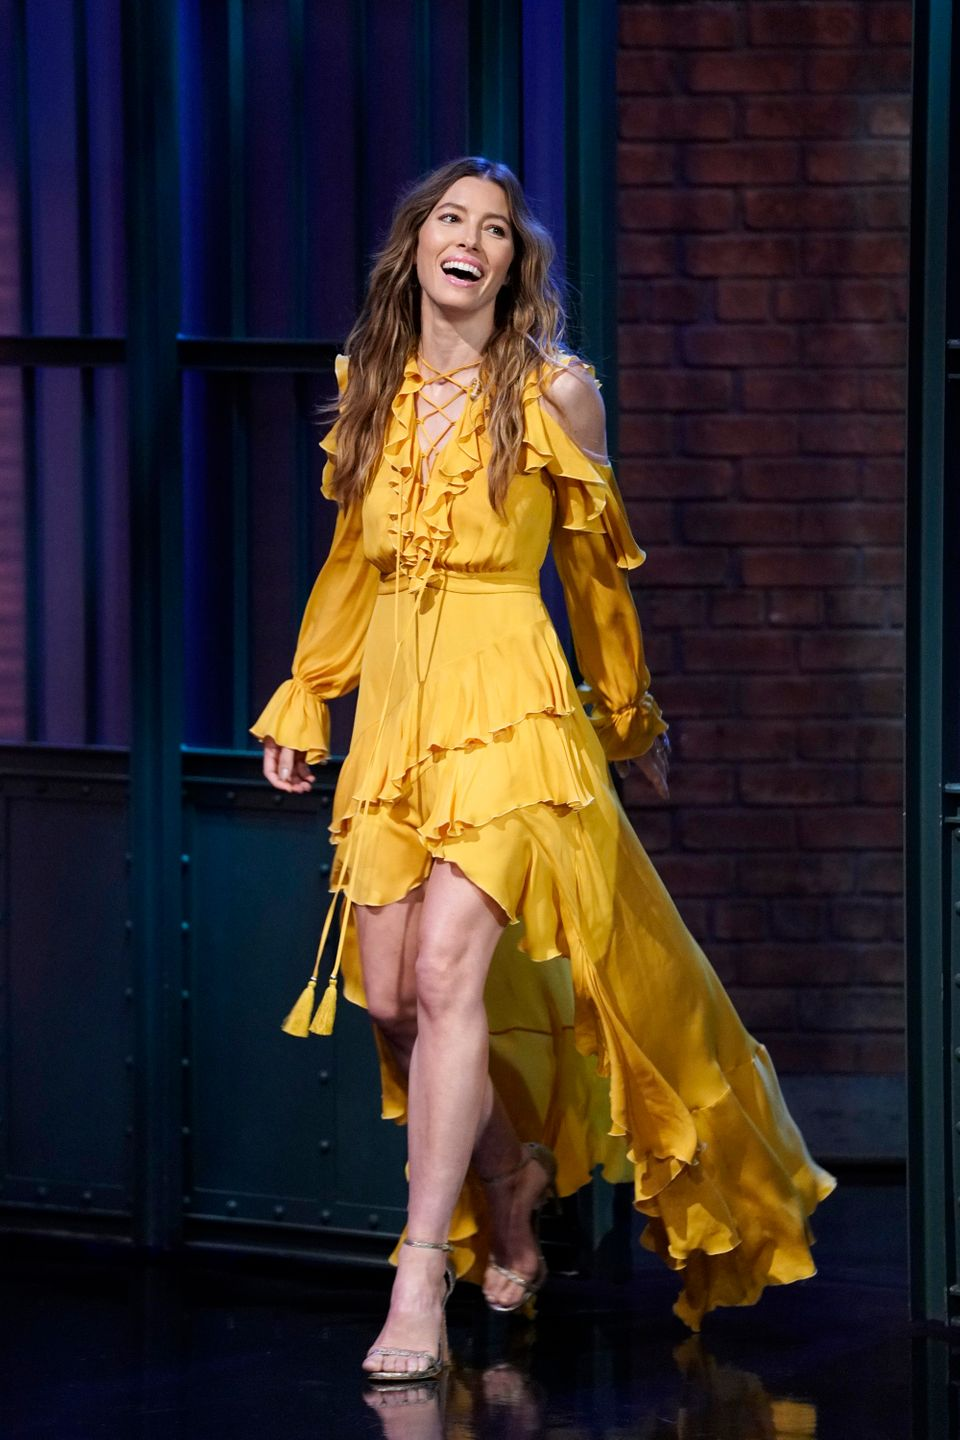 LATE NIGHT WITH SETH MEYERS -- Episode 725 -- Pictured: Actress Jessica Biel arrives on August 16, 2018 -- (Photo by: Lloyd B